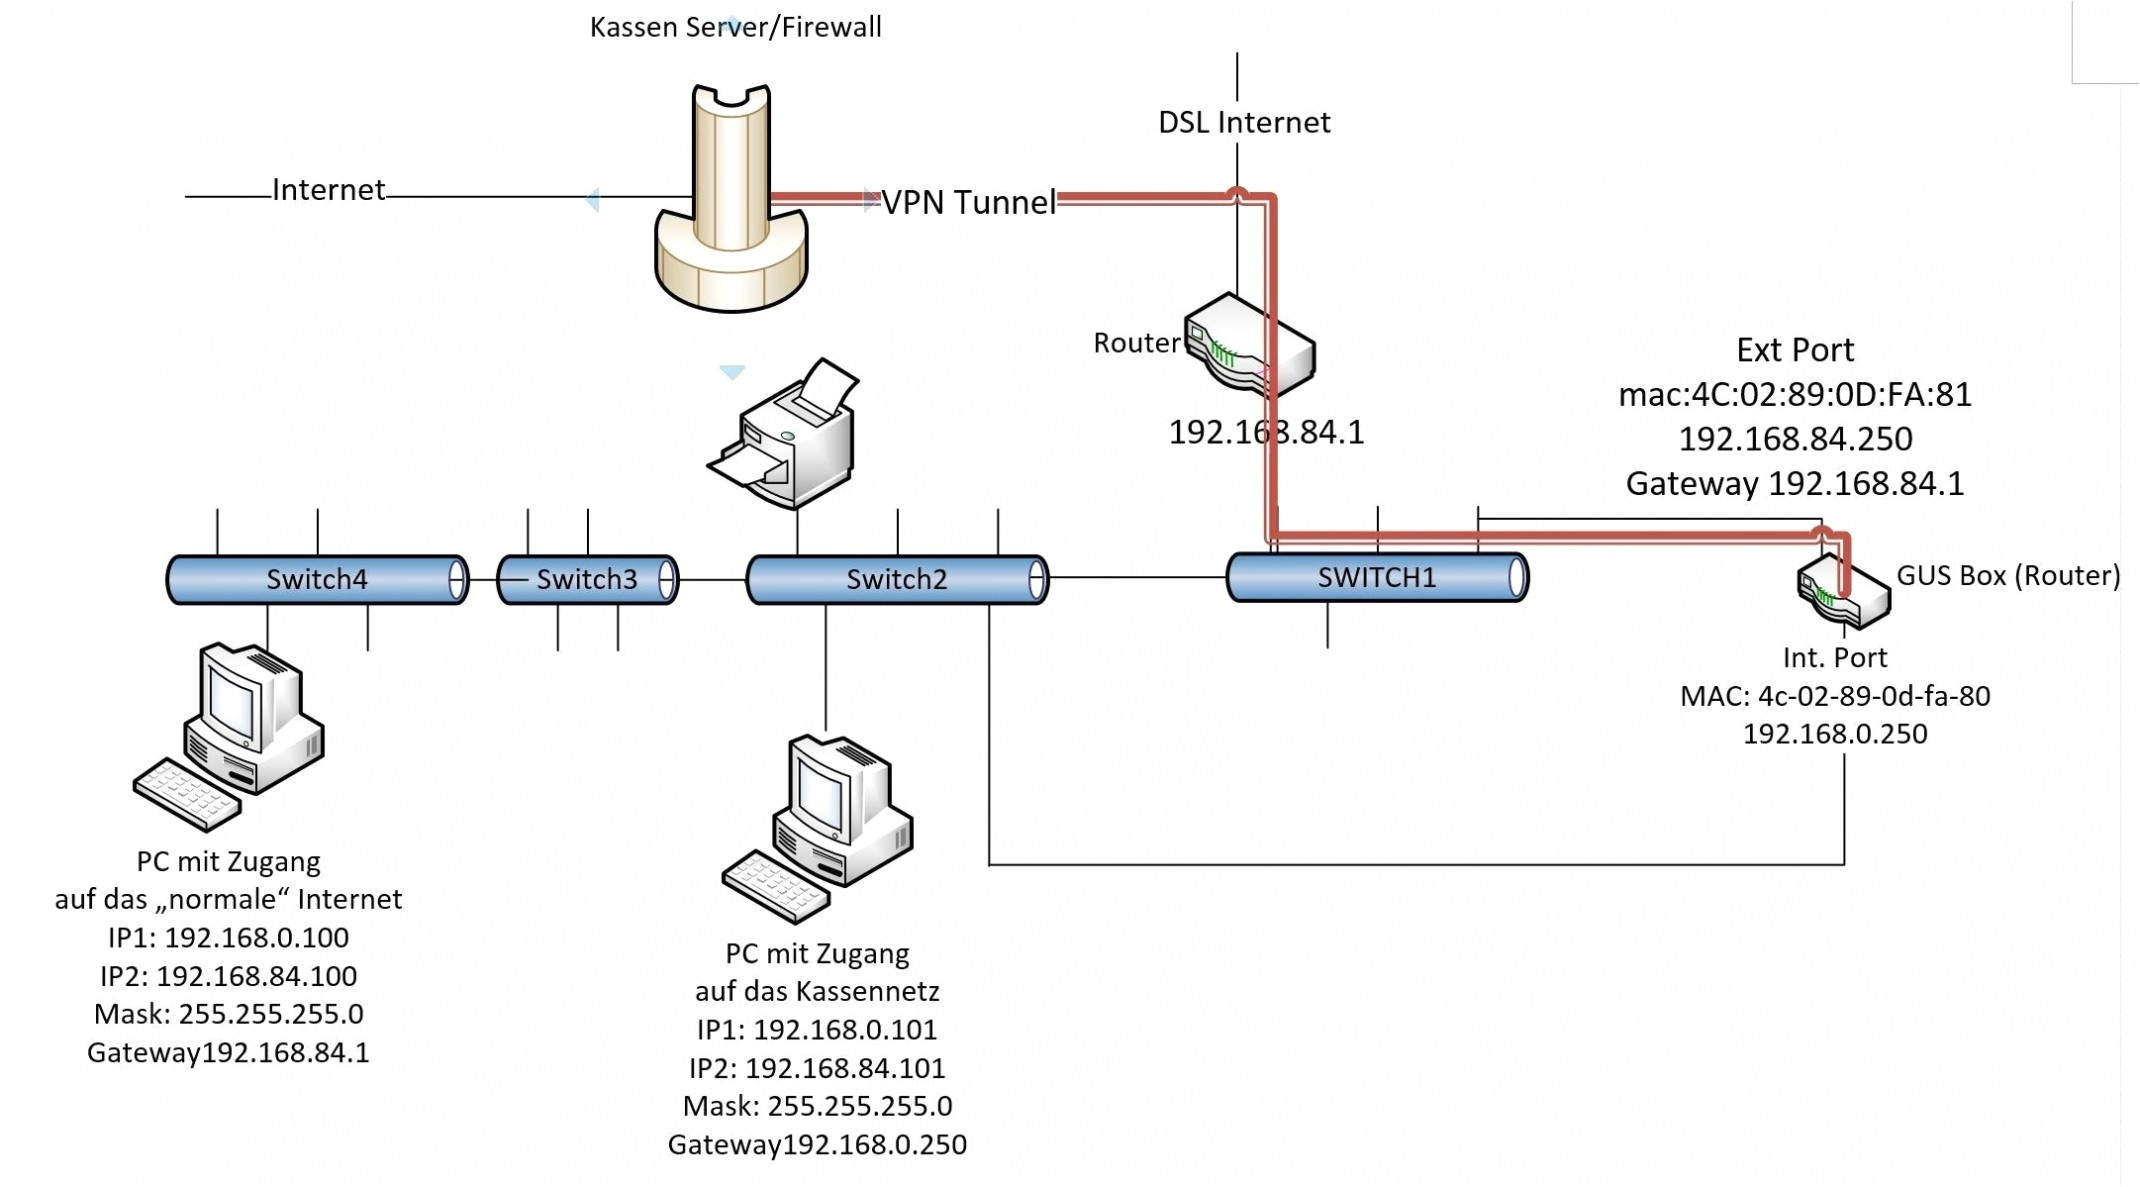 ansul system wiring diagram best of ansul system wiring schematicansul system wiring diagram new power circuit